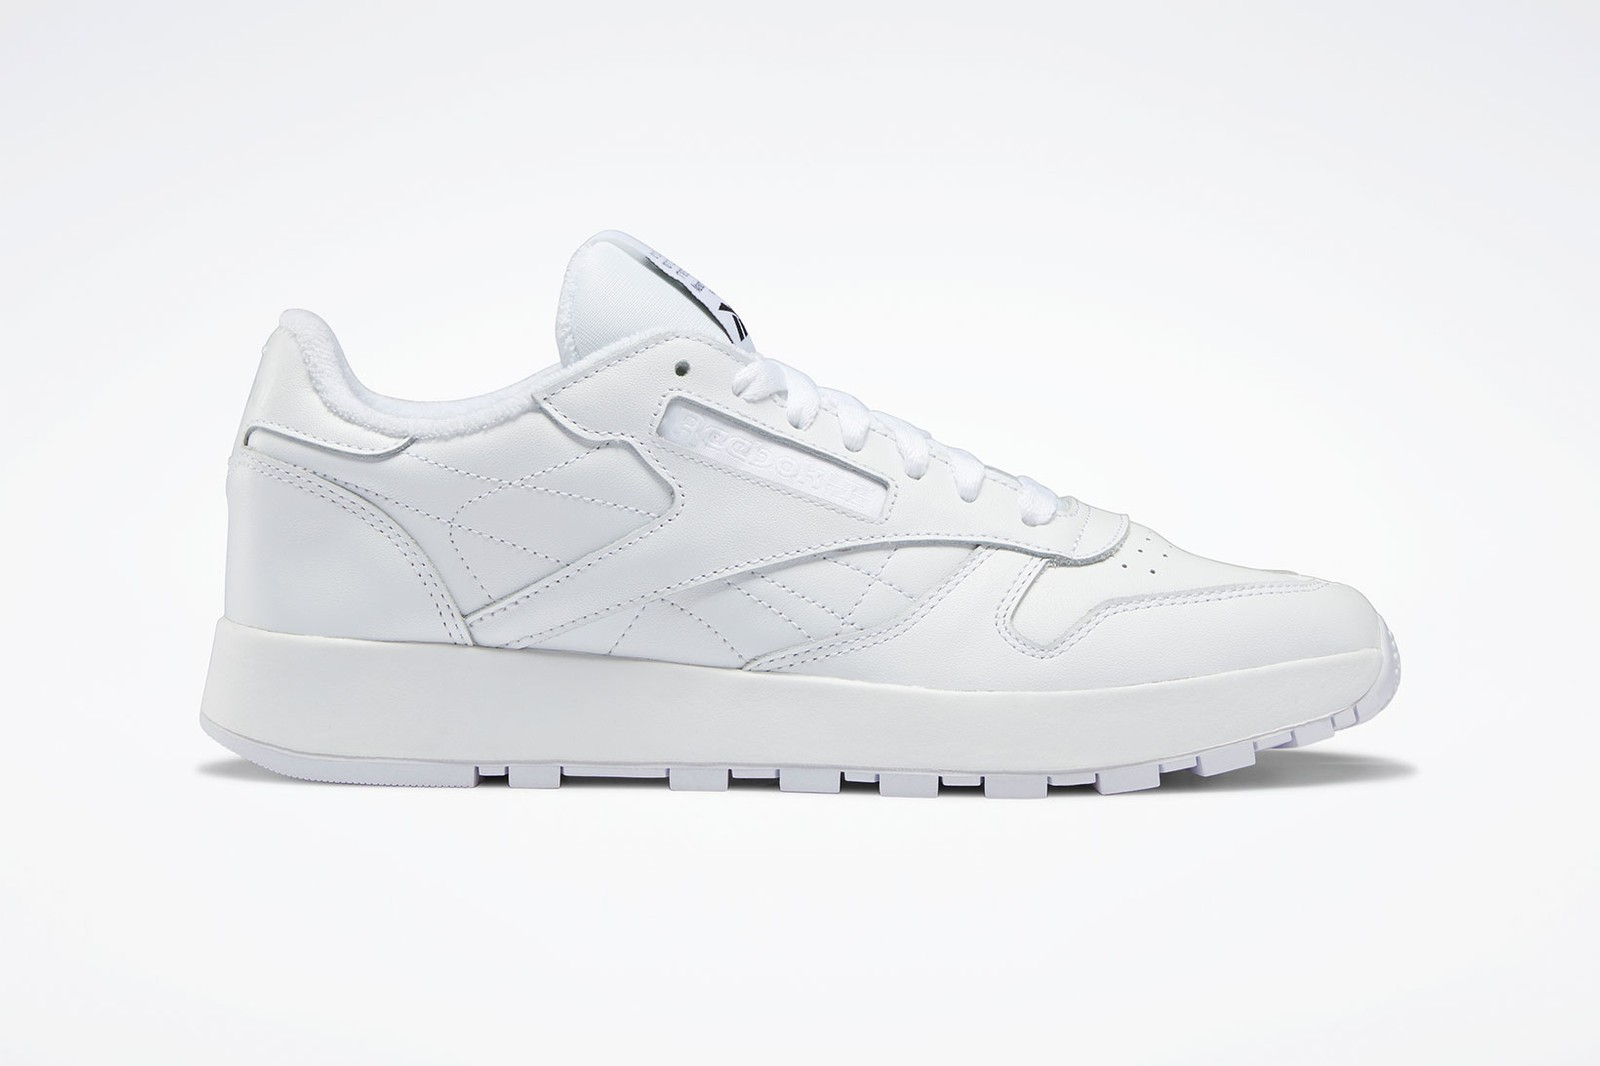 maison margiela reebok classic leather tabi toe sneakers collaboration release date price where to buy